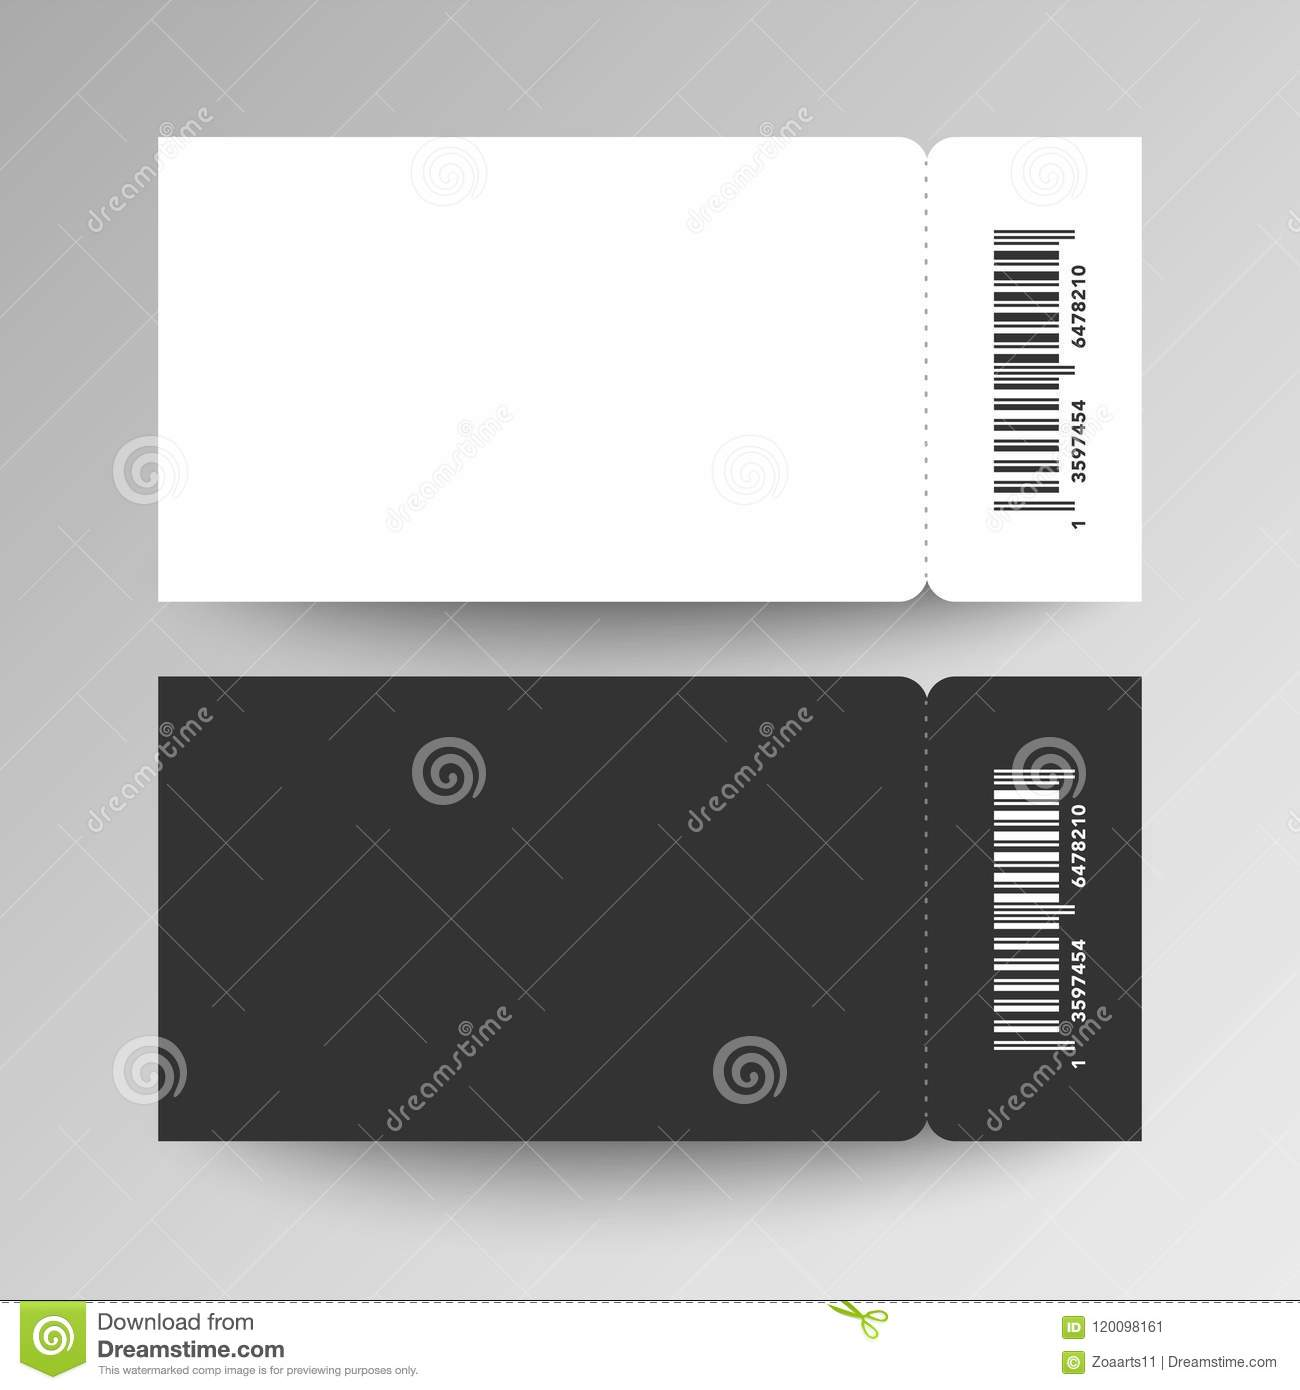 Vector Illustration Tow Blank Festival Concert Event Ticket Template With Bar Code